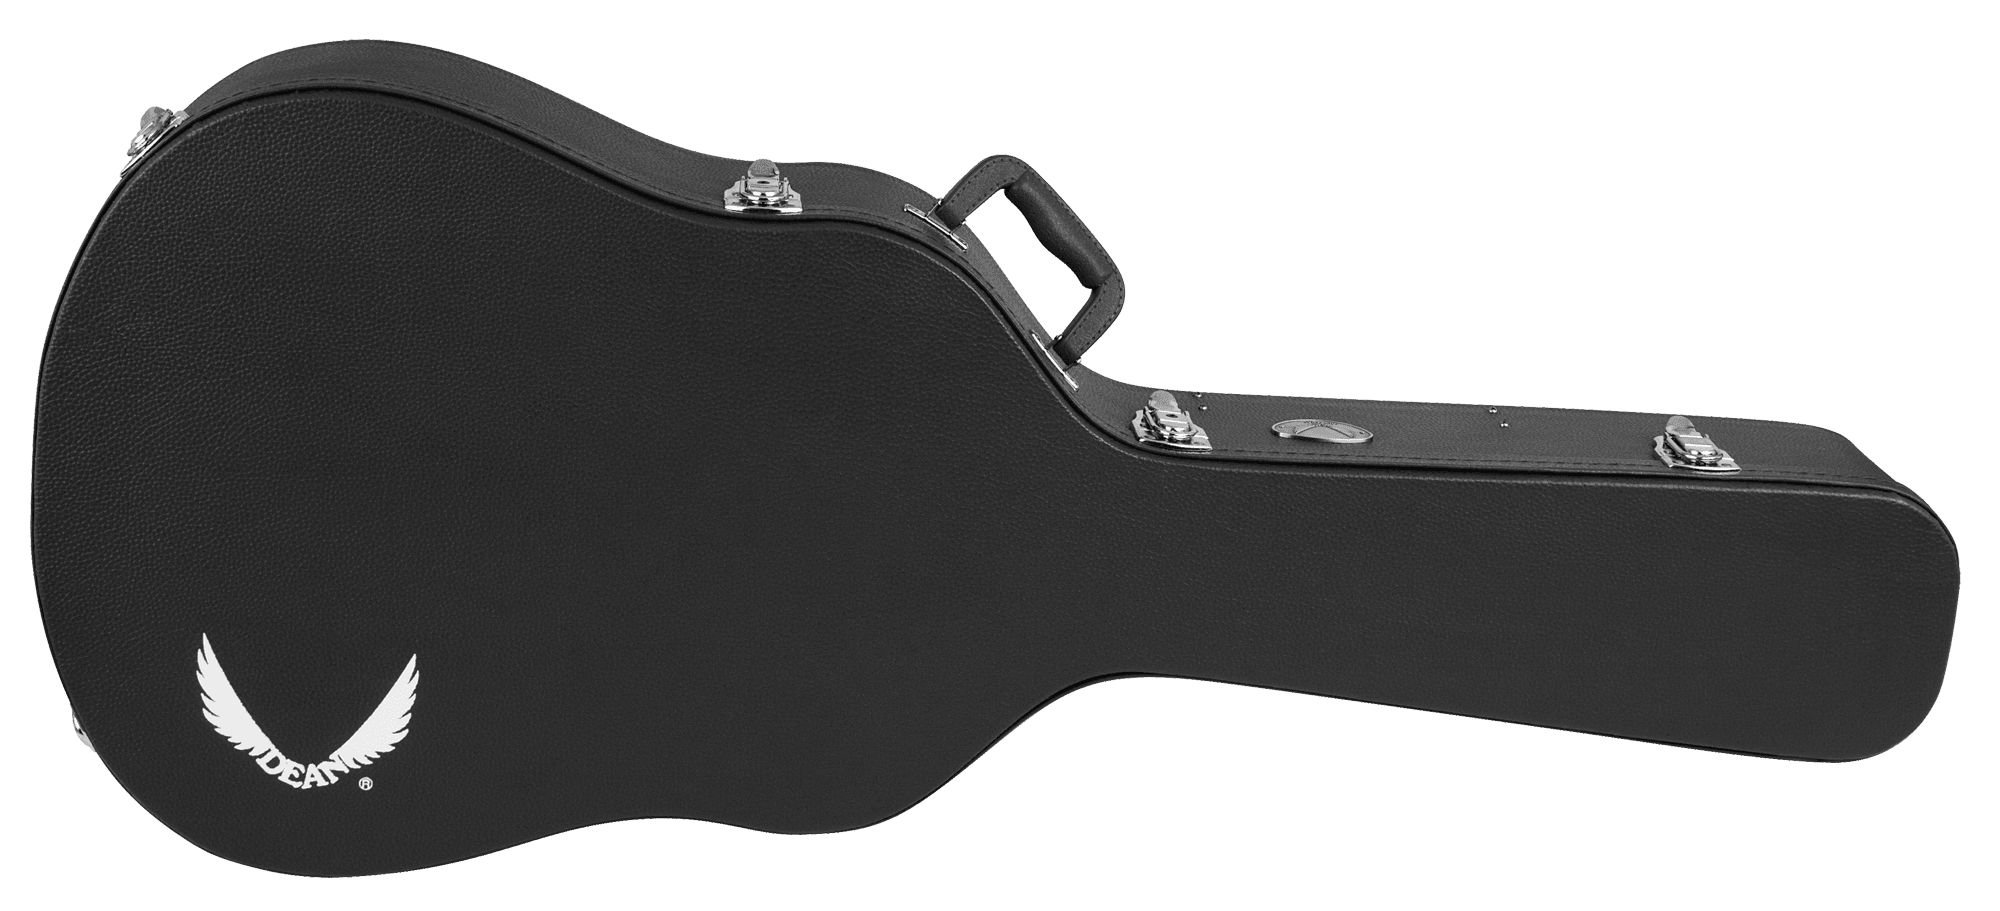 guitar case png - Google Search